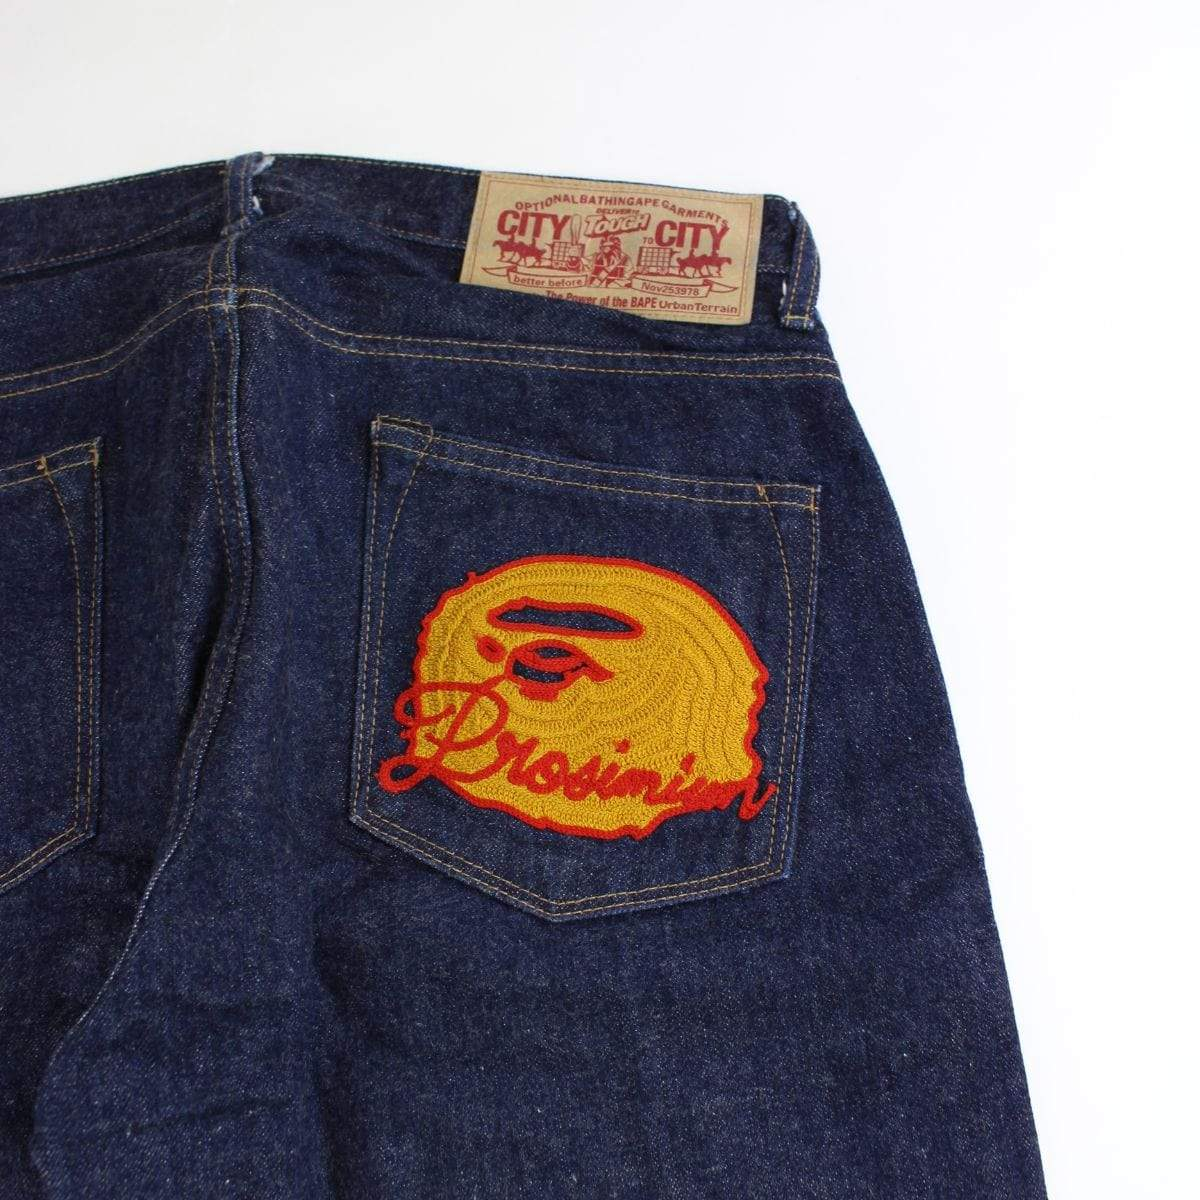 bape orange big ape denim jeans - SaruGeneral